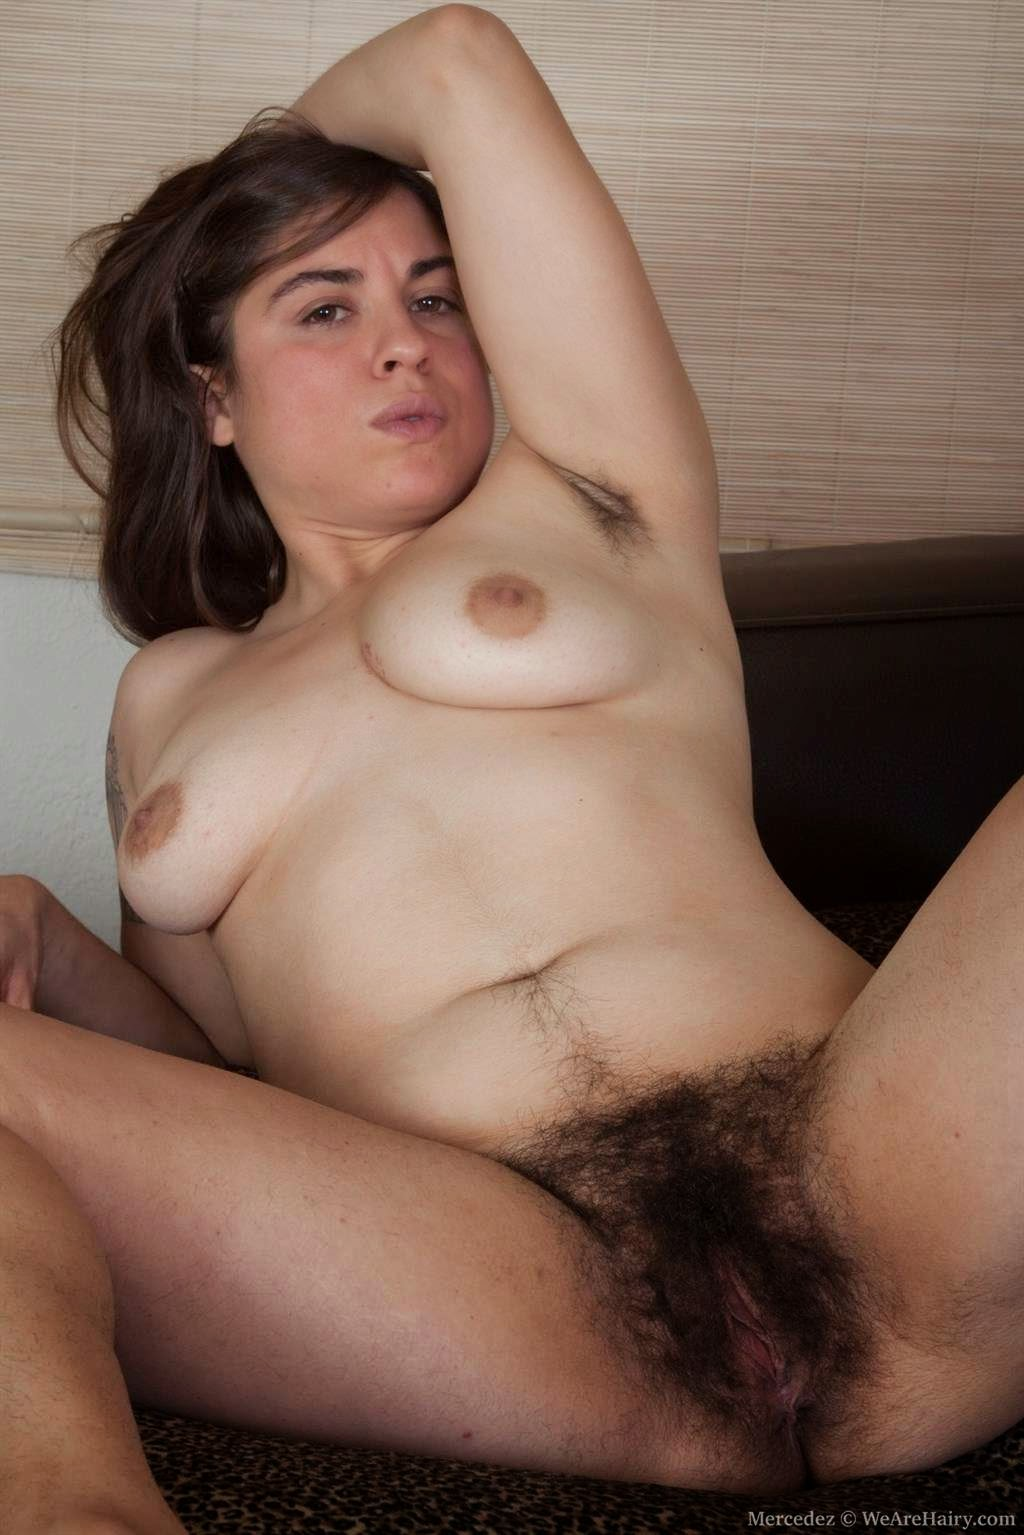 Fat hairy mature nudist foto 766